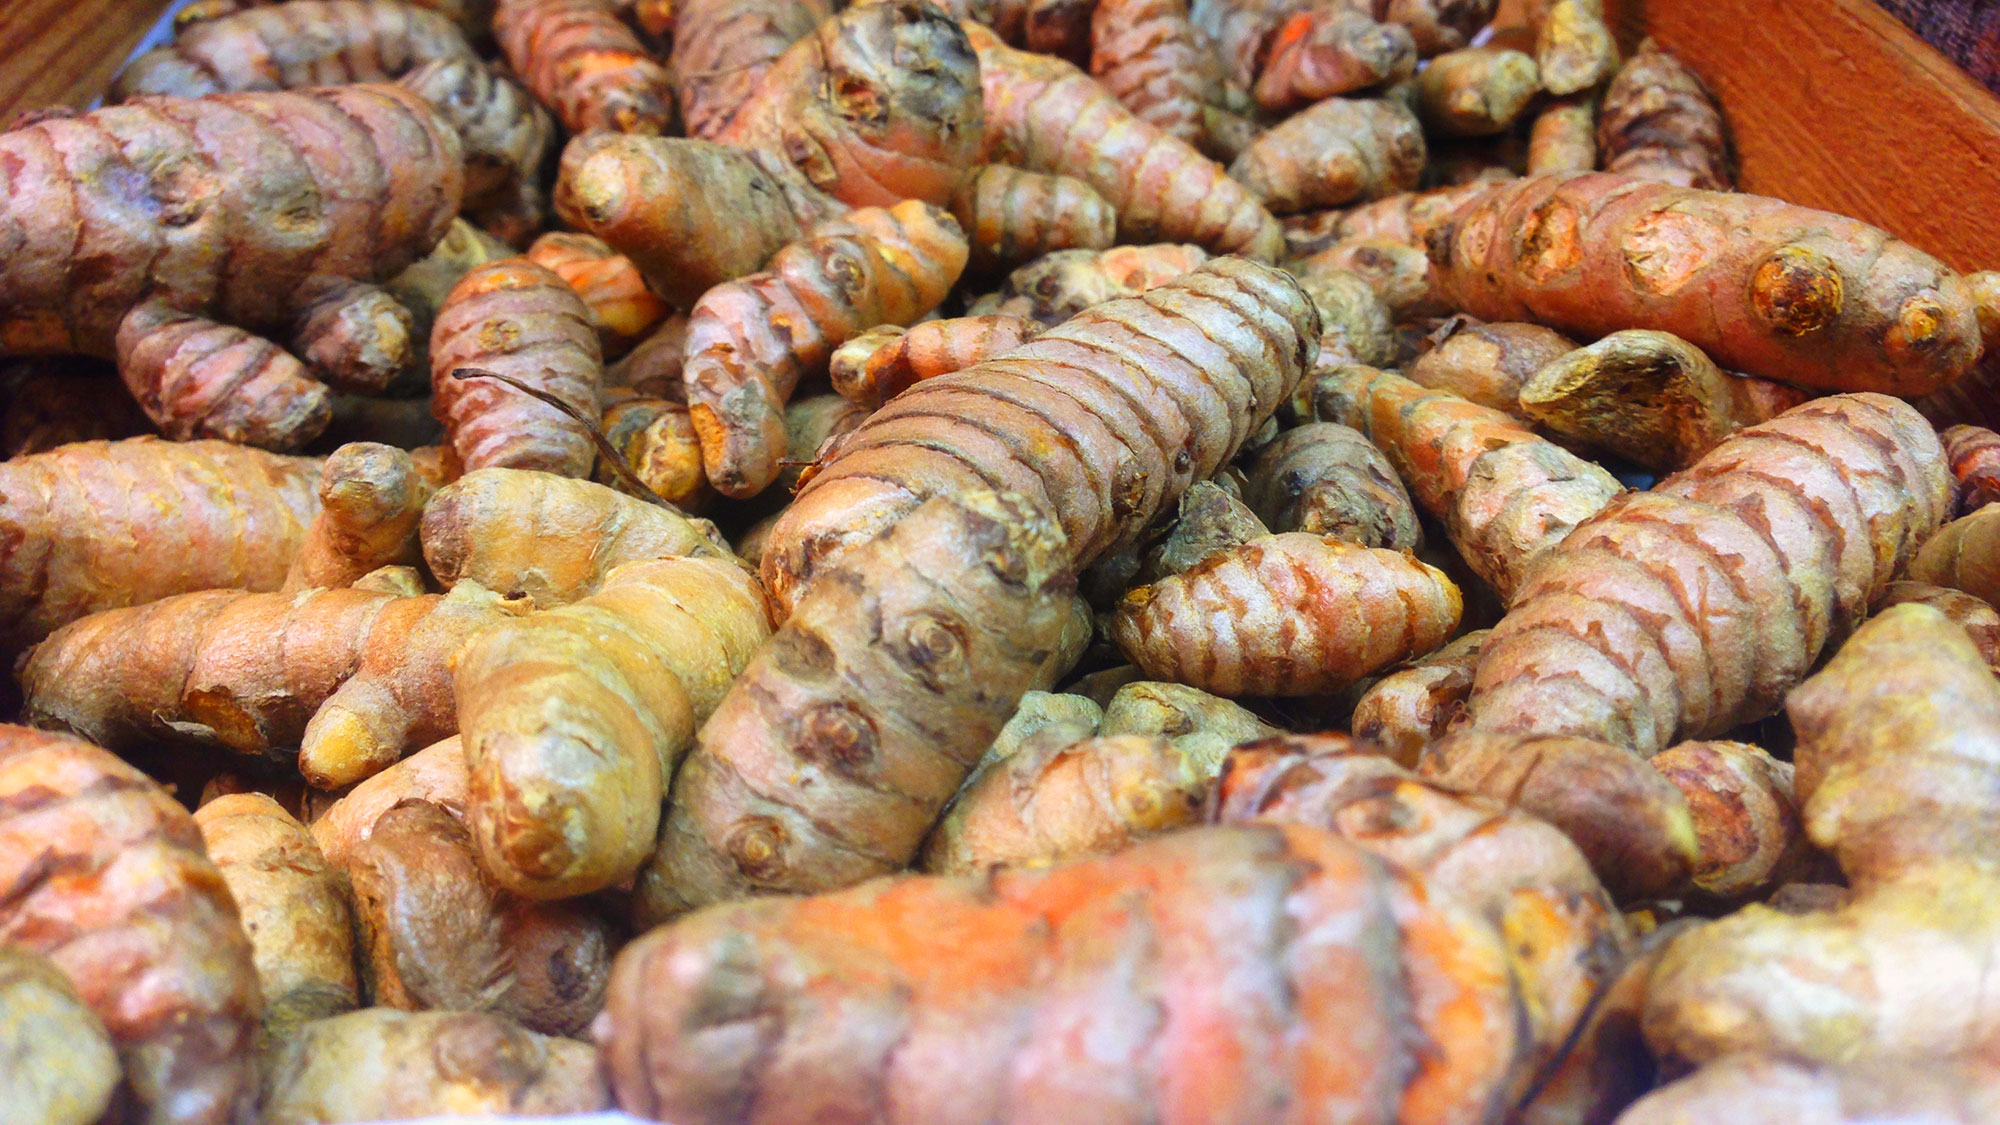 turmeric-in-shop